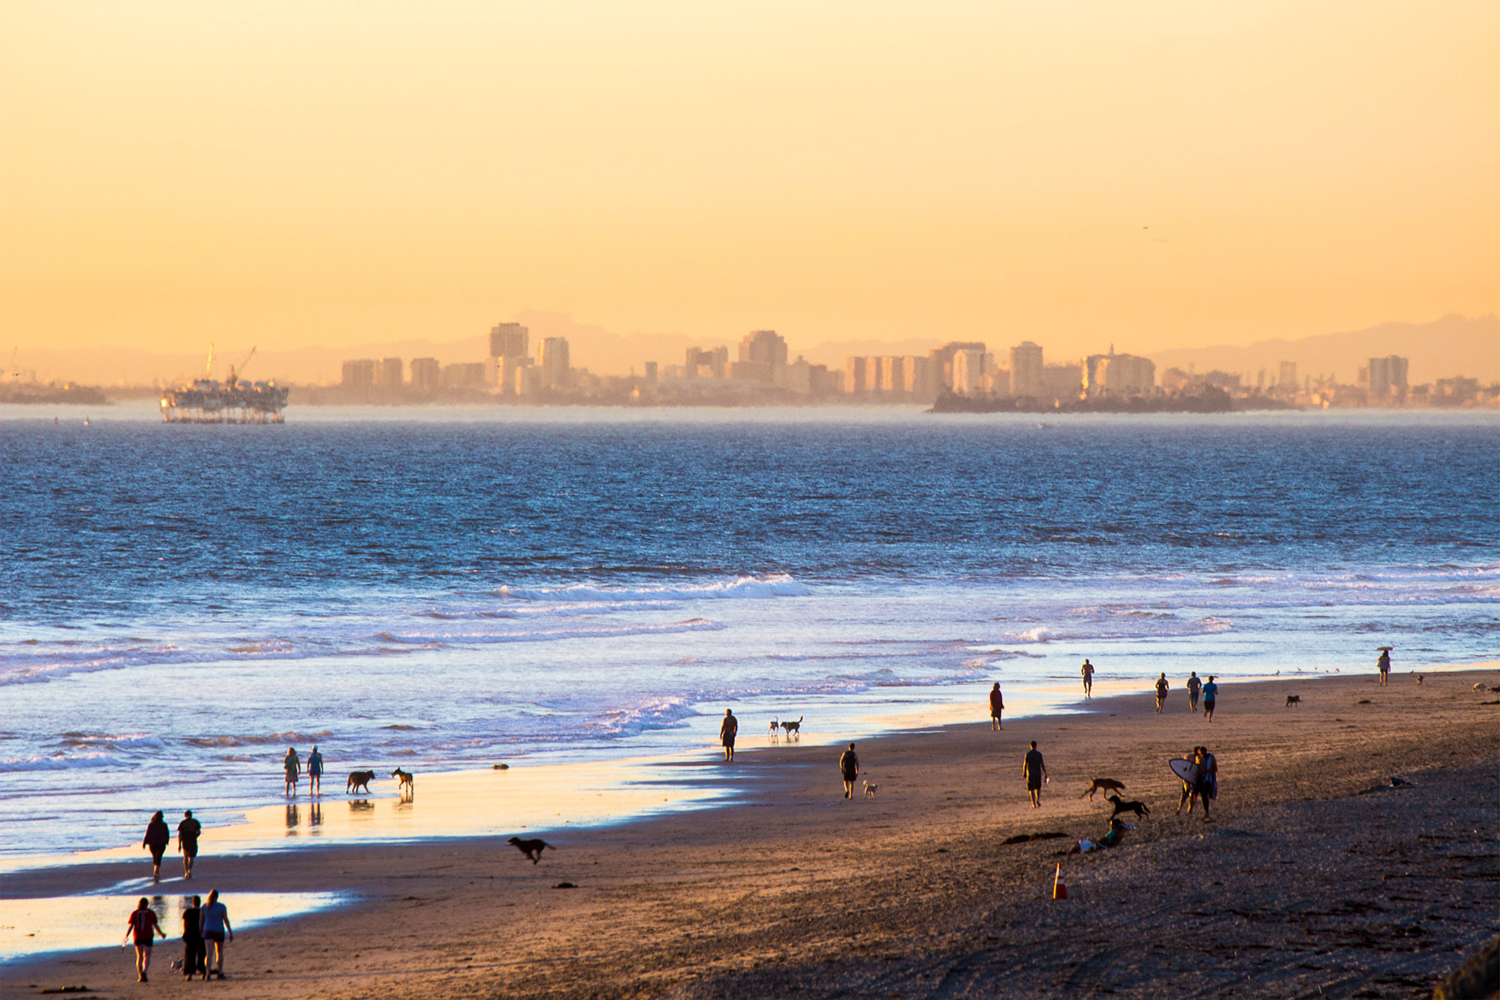 This photo taken October 20, 2016. Looking from the cliffs over the Huntington Beach Dog Beach toward Long Beach. Also included in the   Surf City, U.S.A. project on this website.